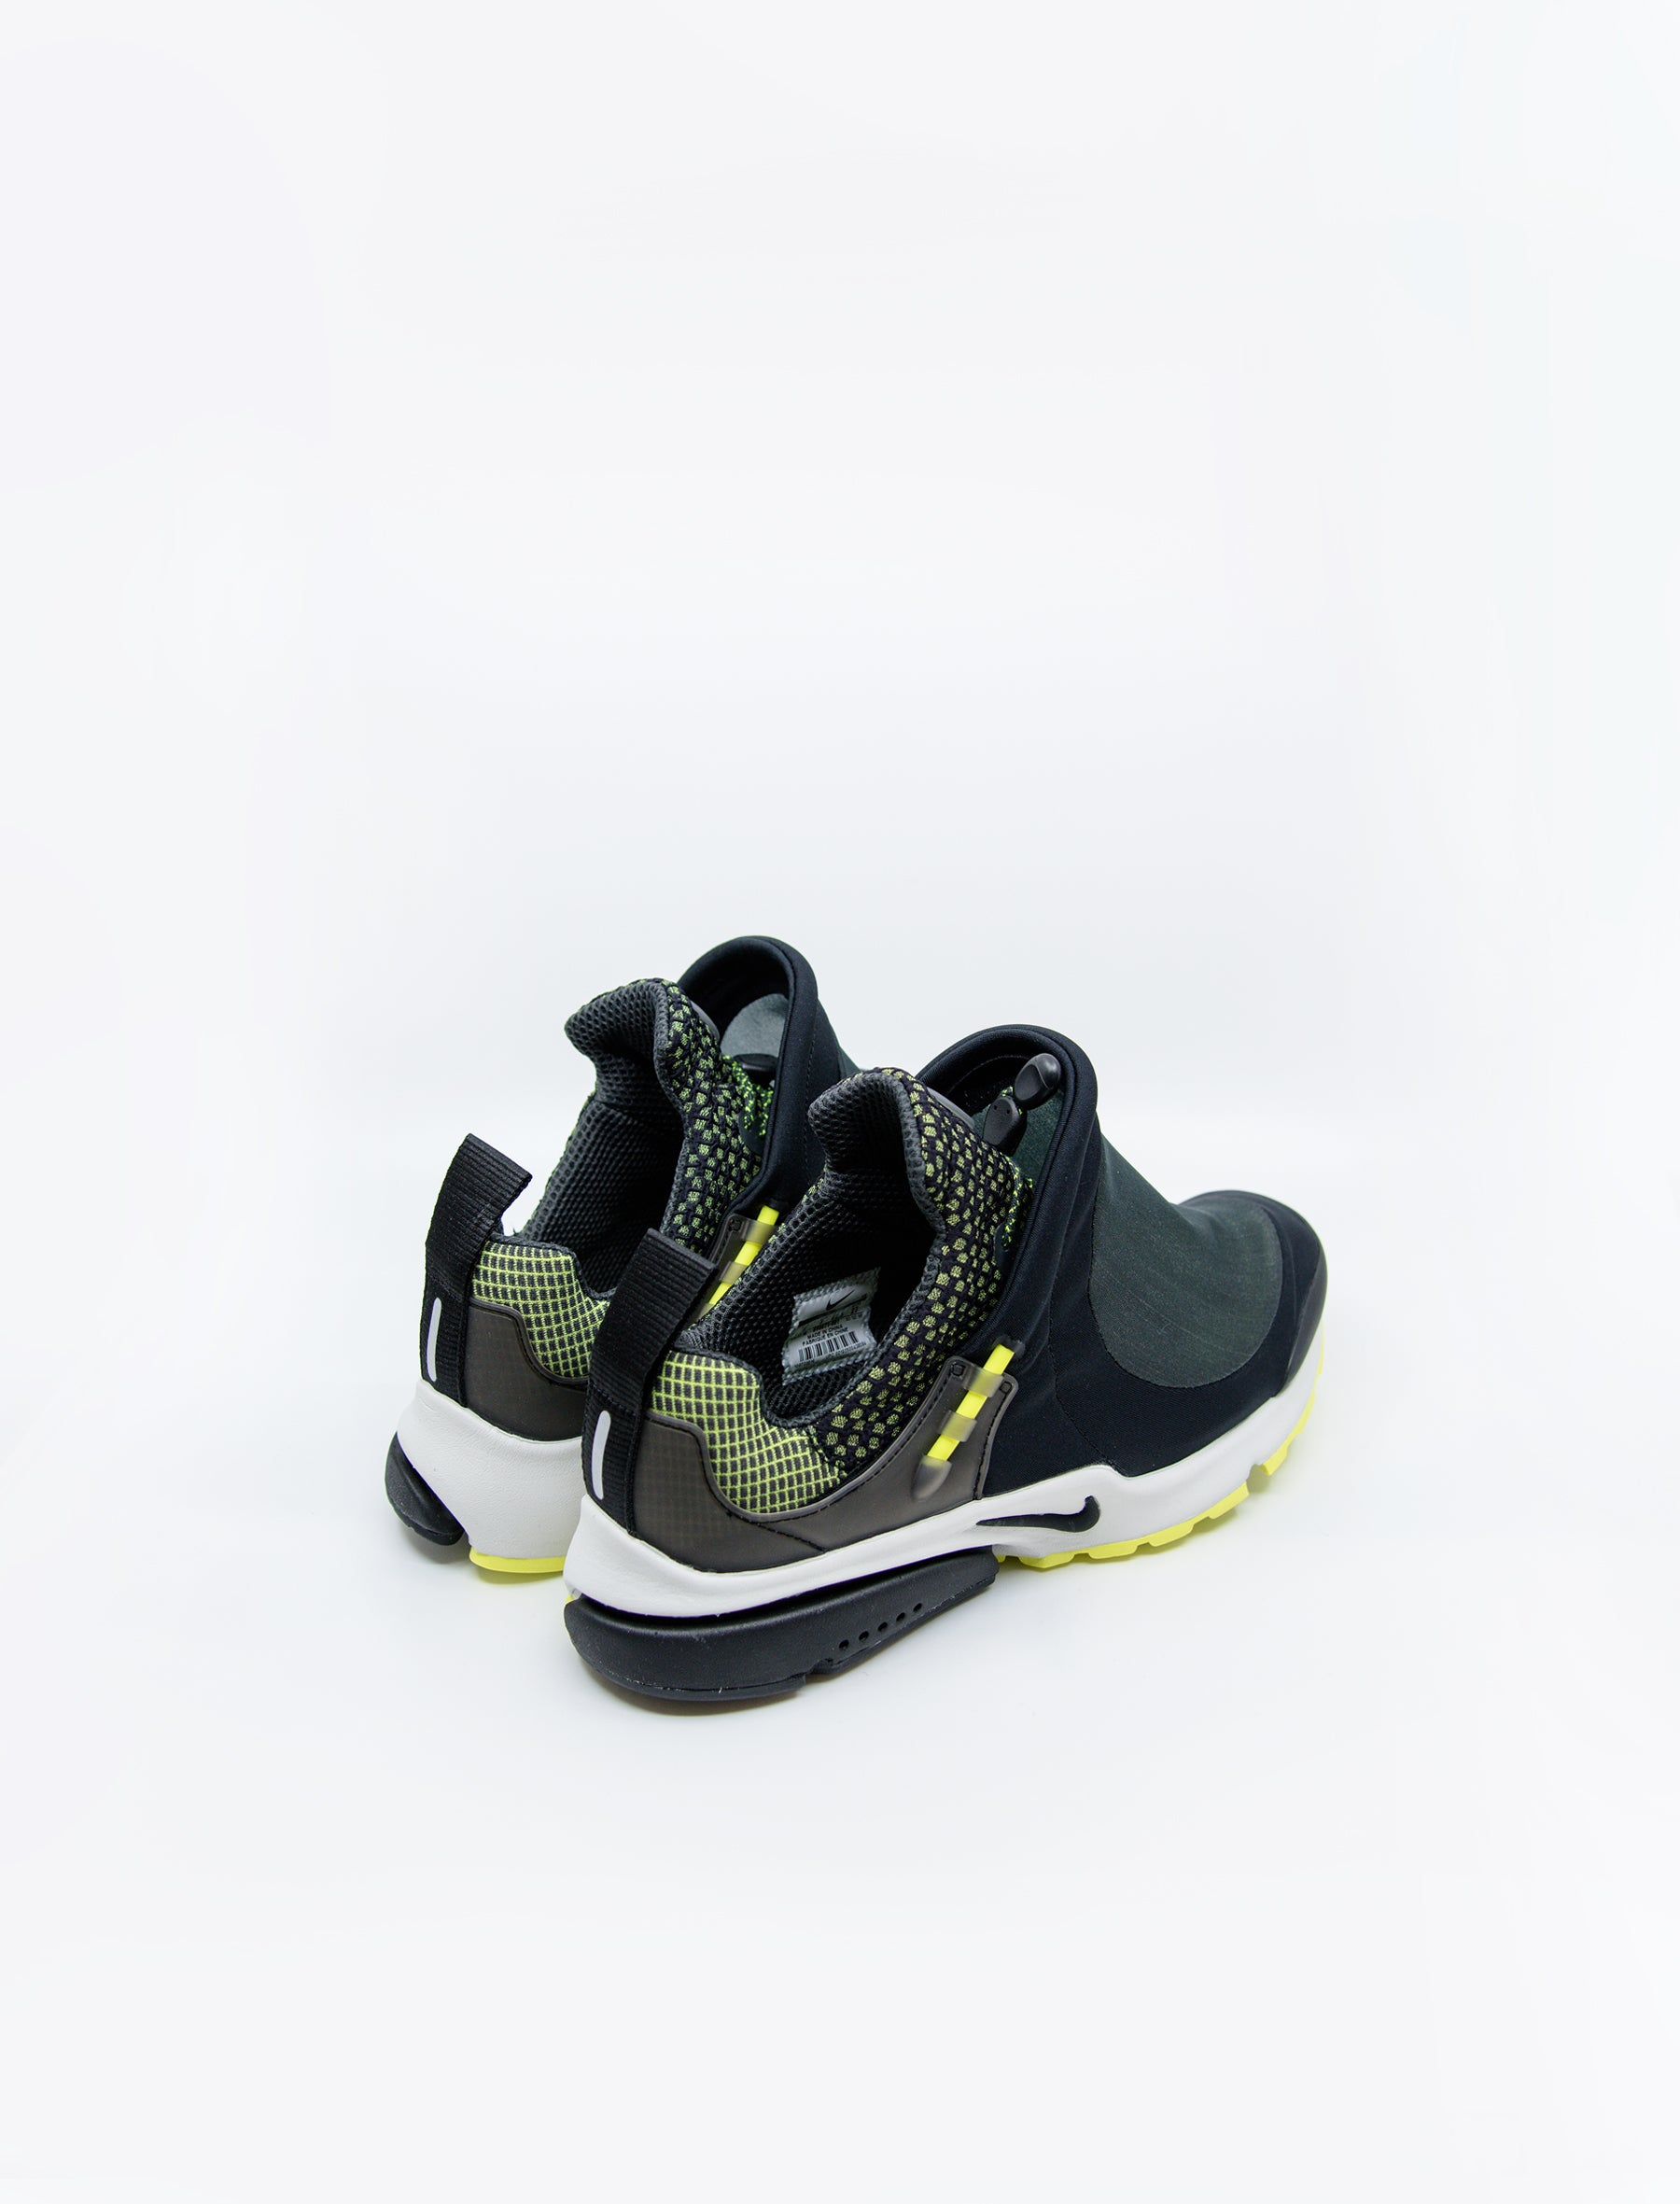 5b78562a973f ... CDG Homme Plus Nike Air Presto Foot Tent Anthracite Lemon Black